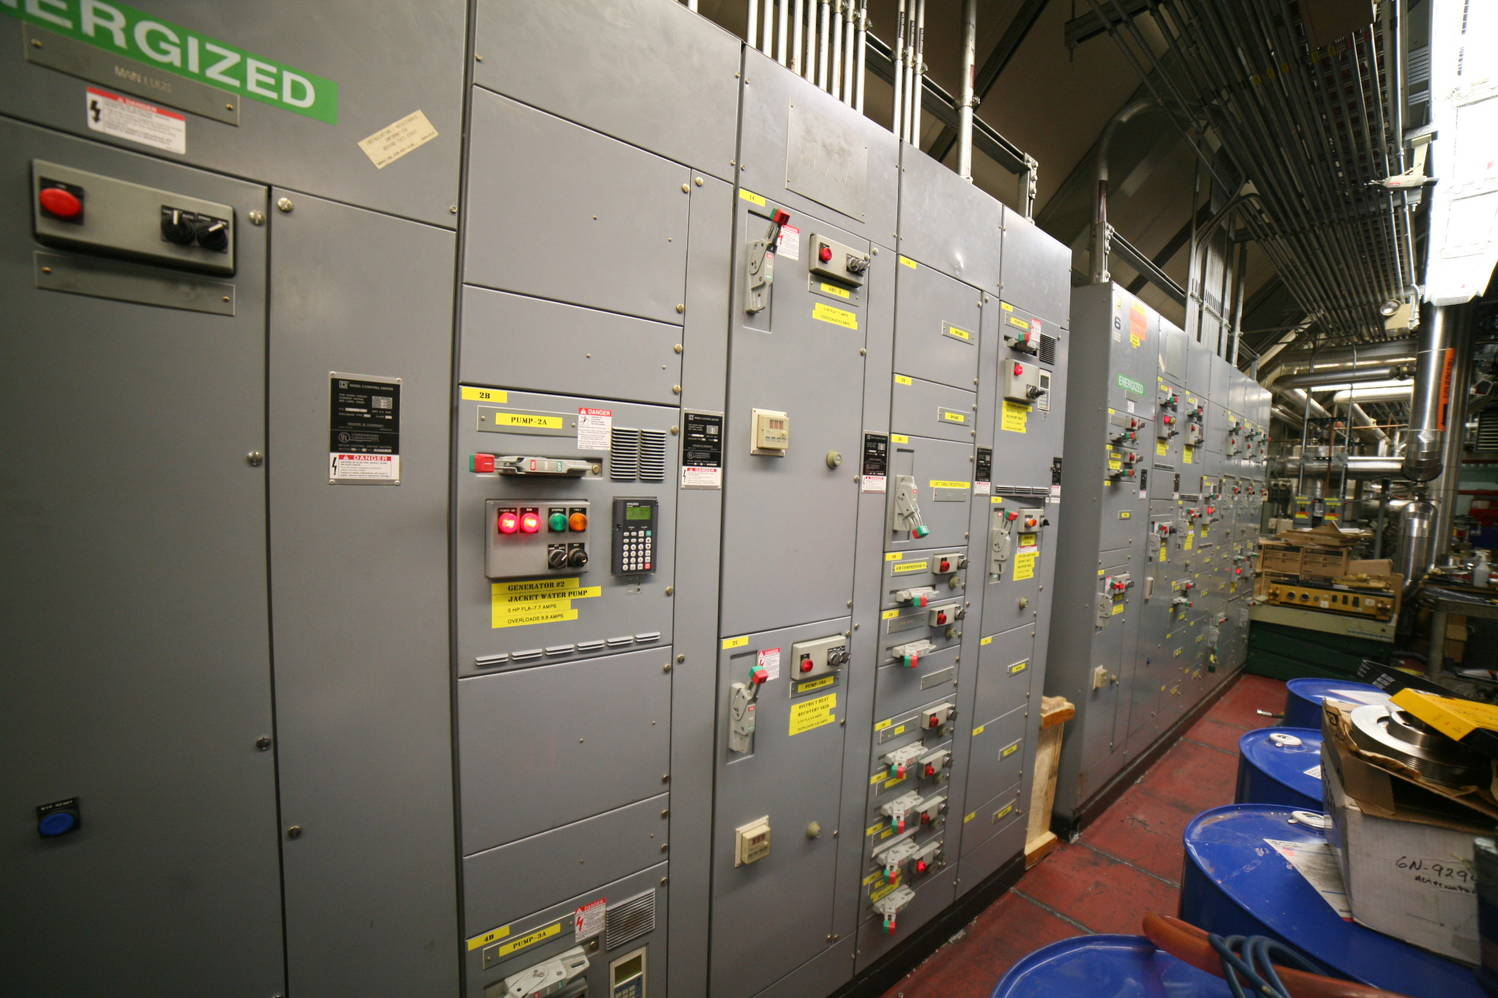 Power plant electrical panel